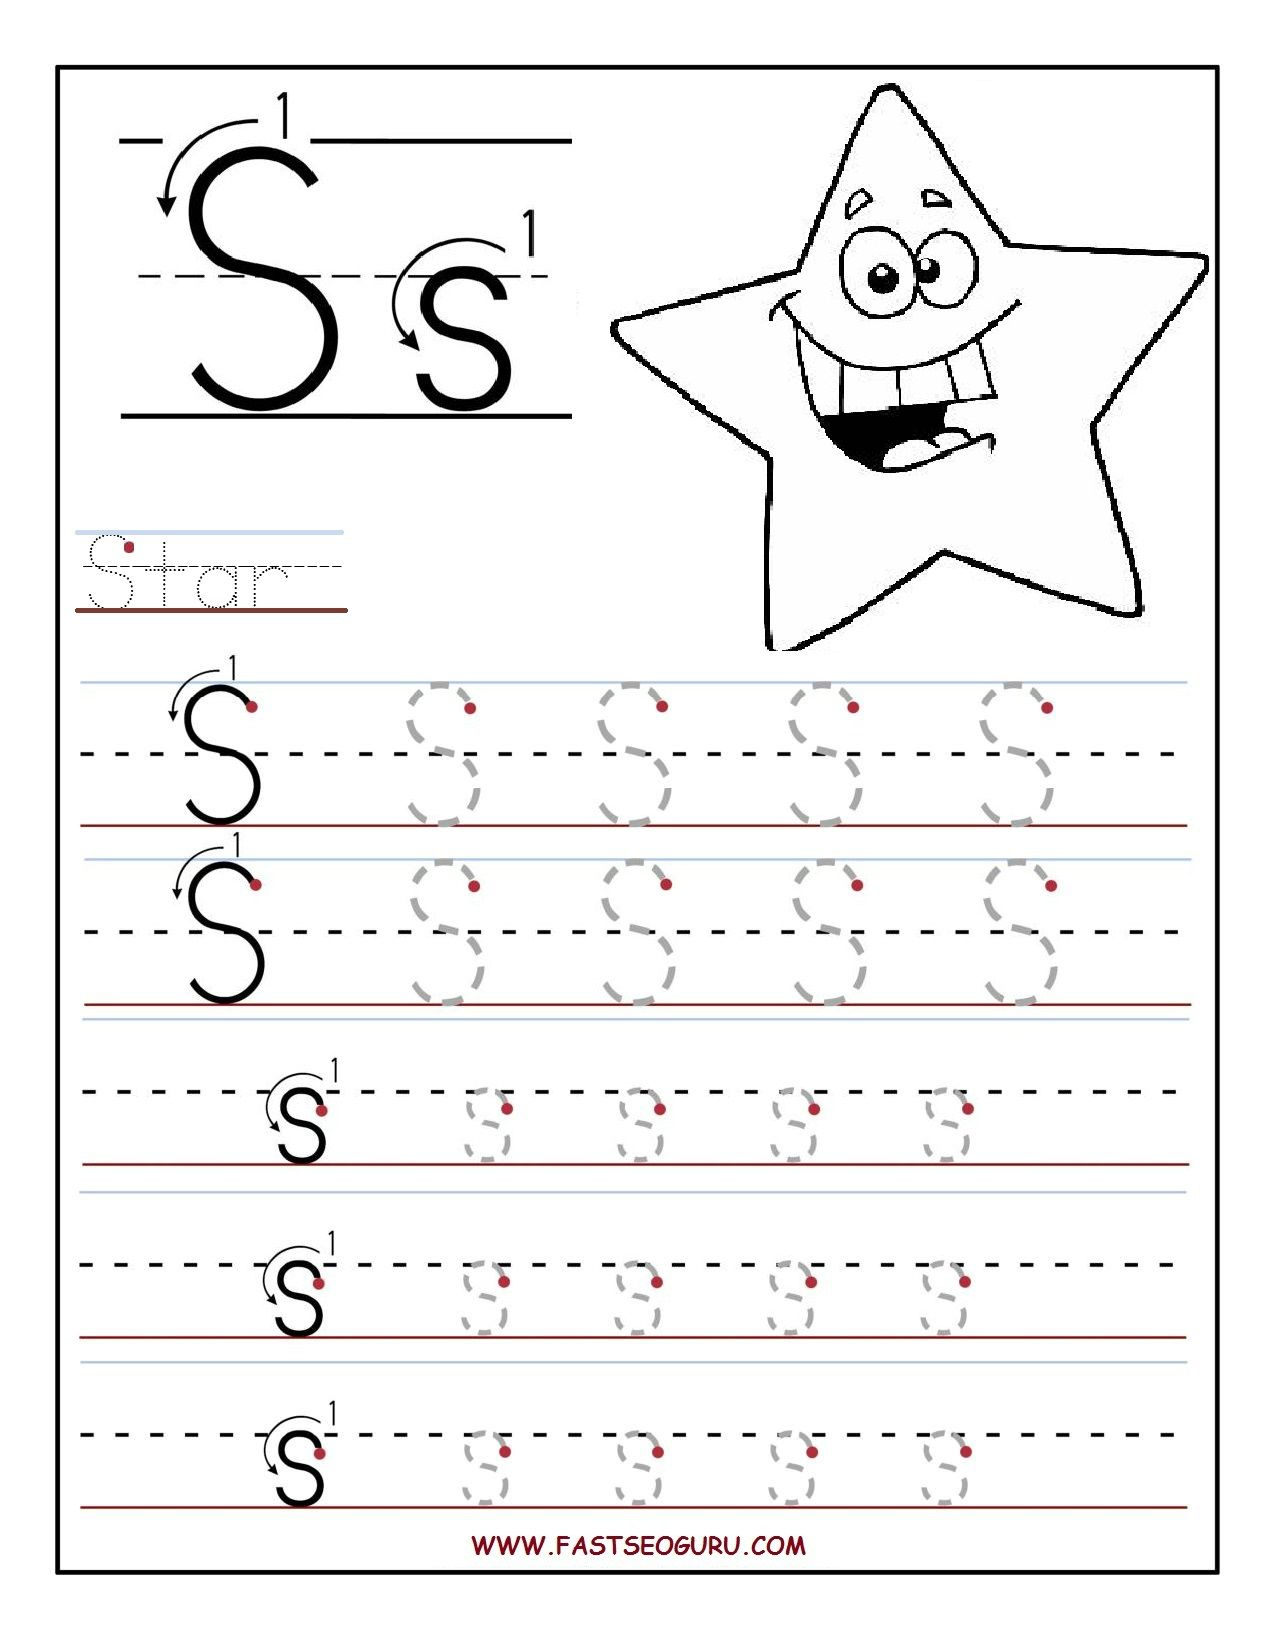 Coloring Book : Printable Letter S Tracing Worksheets inside Printable Preschool Worksheets Tracing Letters